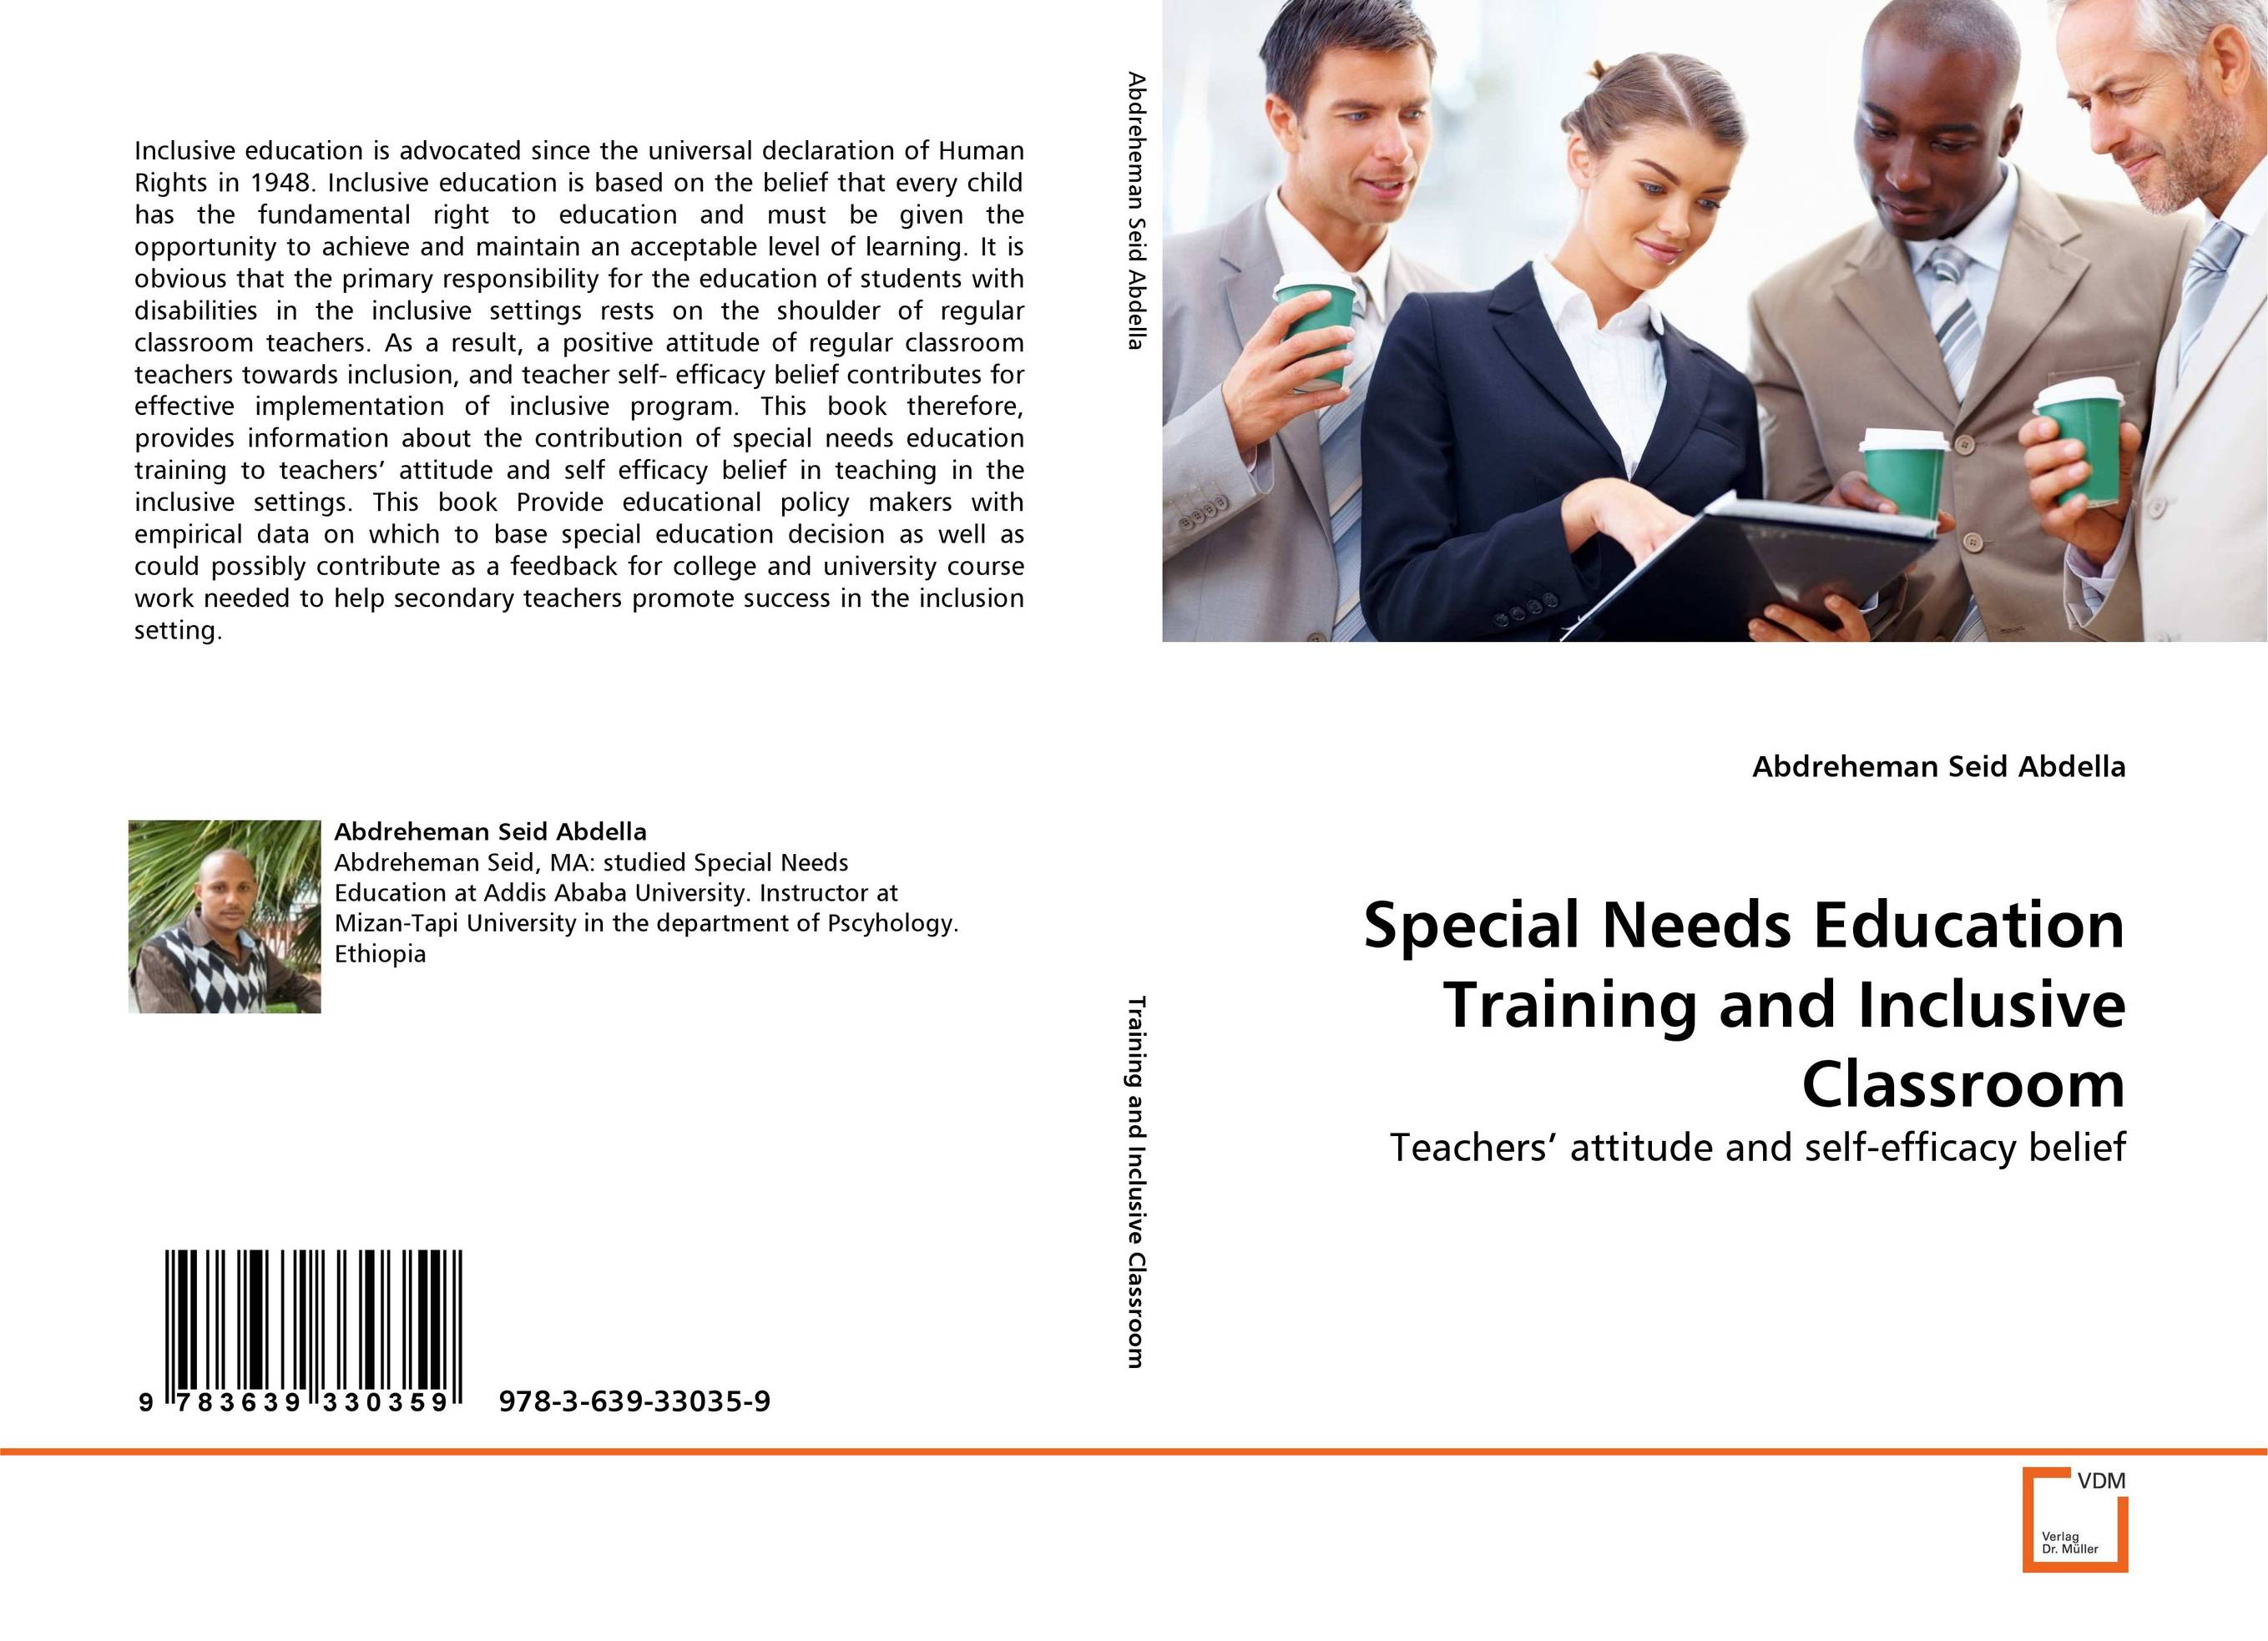 Special Needs Education Training and Inclusive Classroom education training and human rights of the prisoners